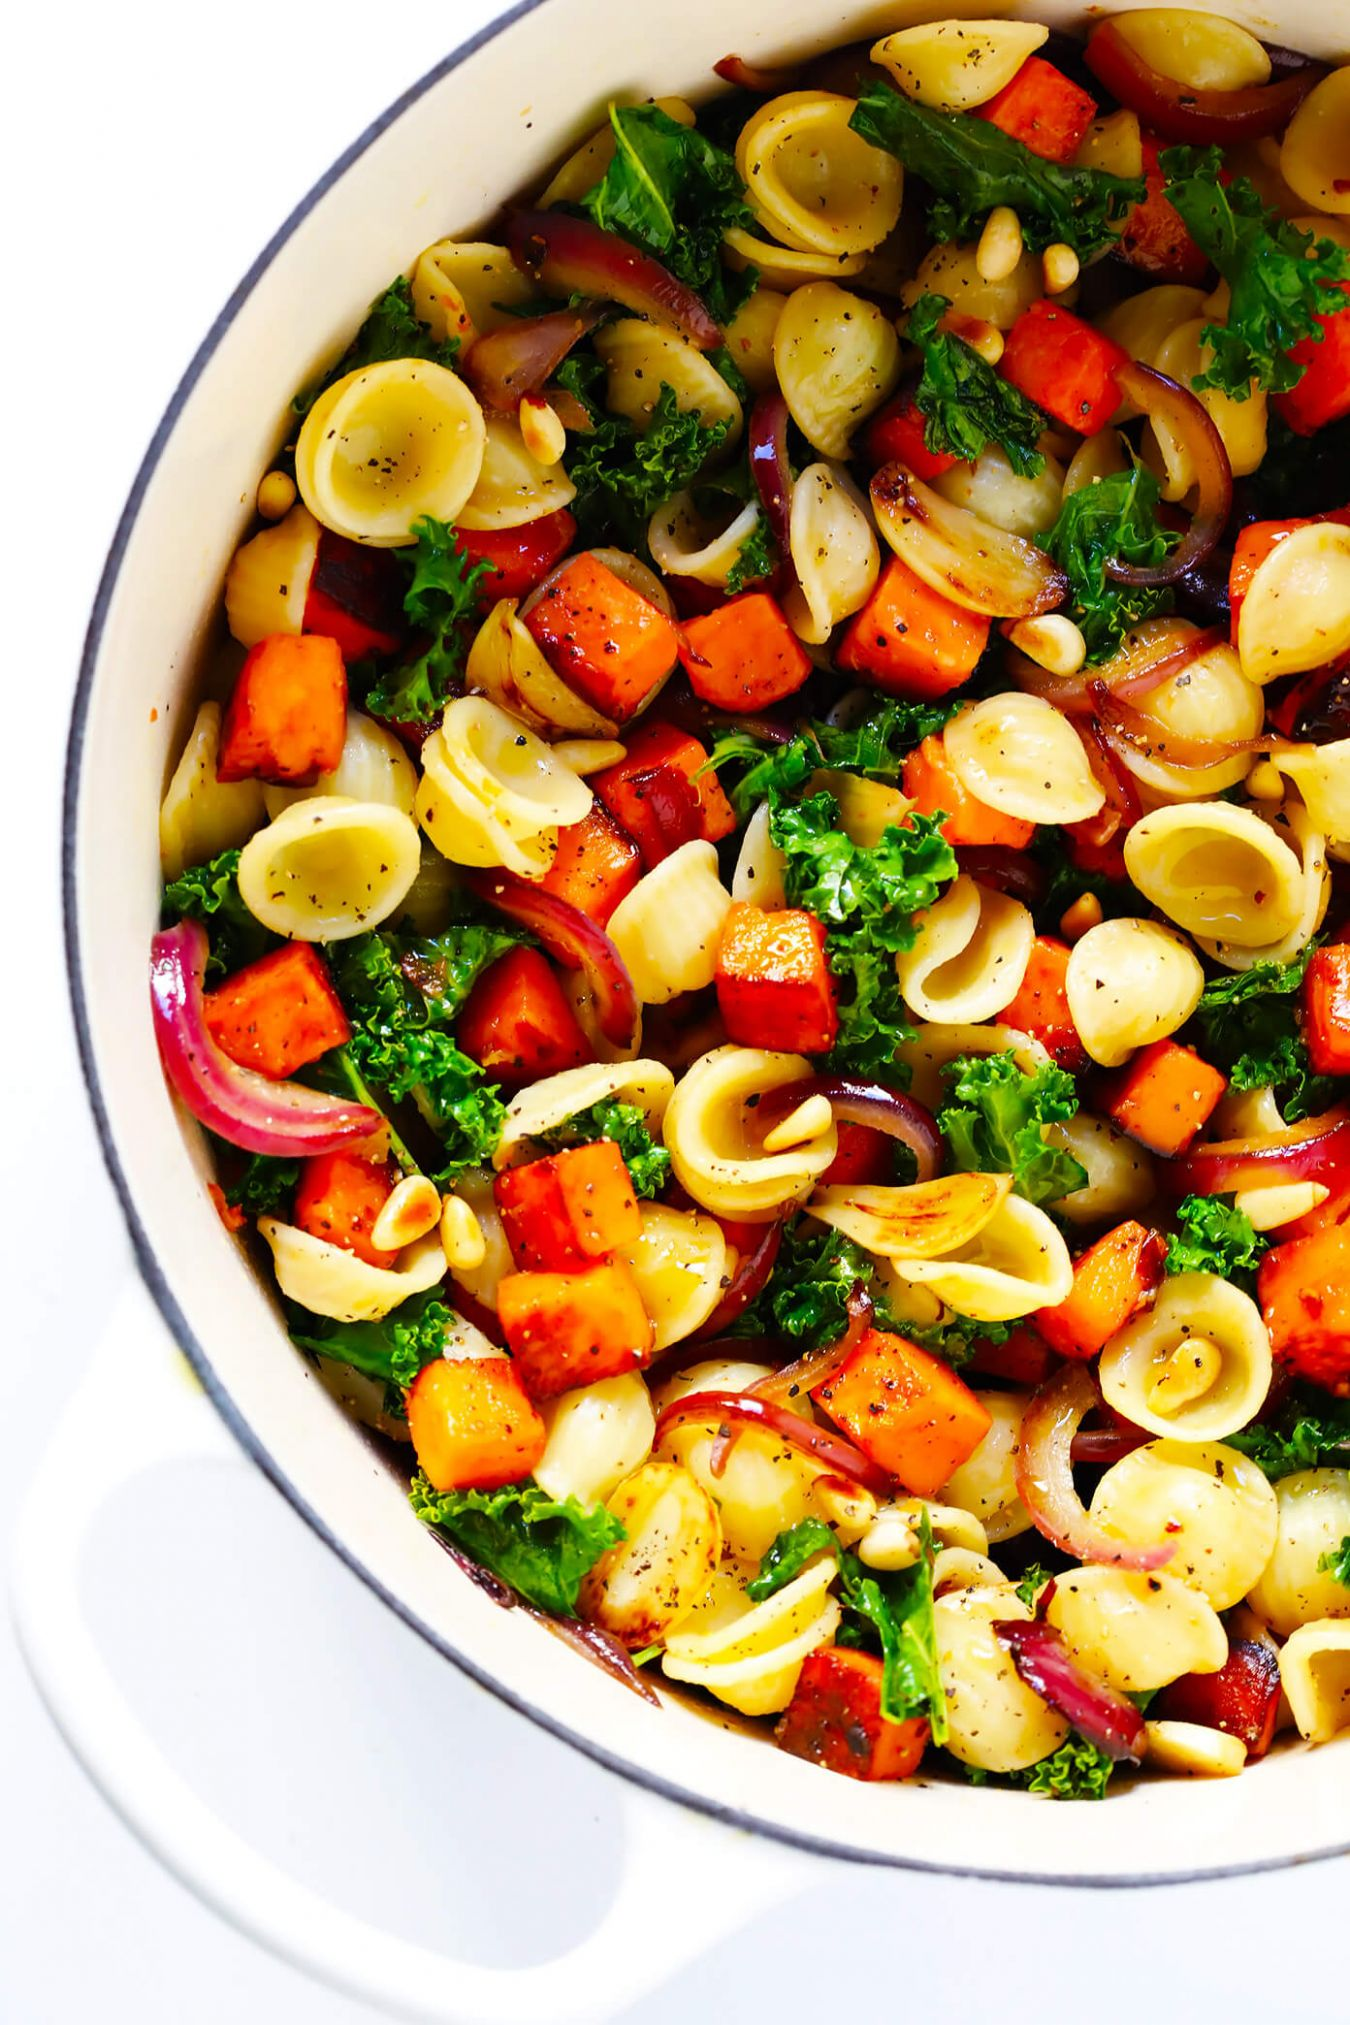 11 Vegetarian Dinner Recipes That Everyone Will LOVE! | Gimme Some ..